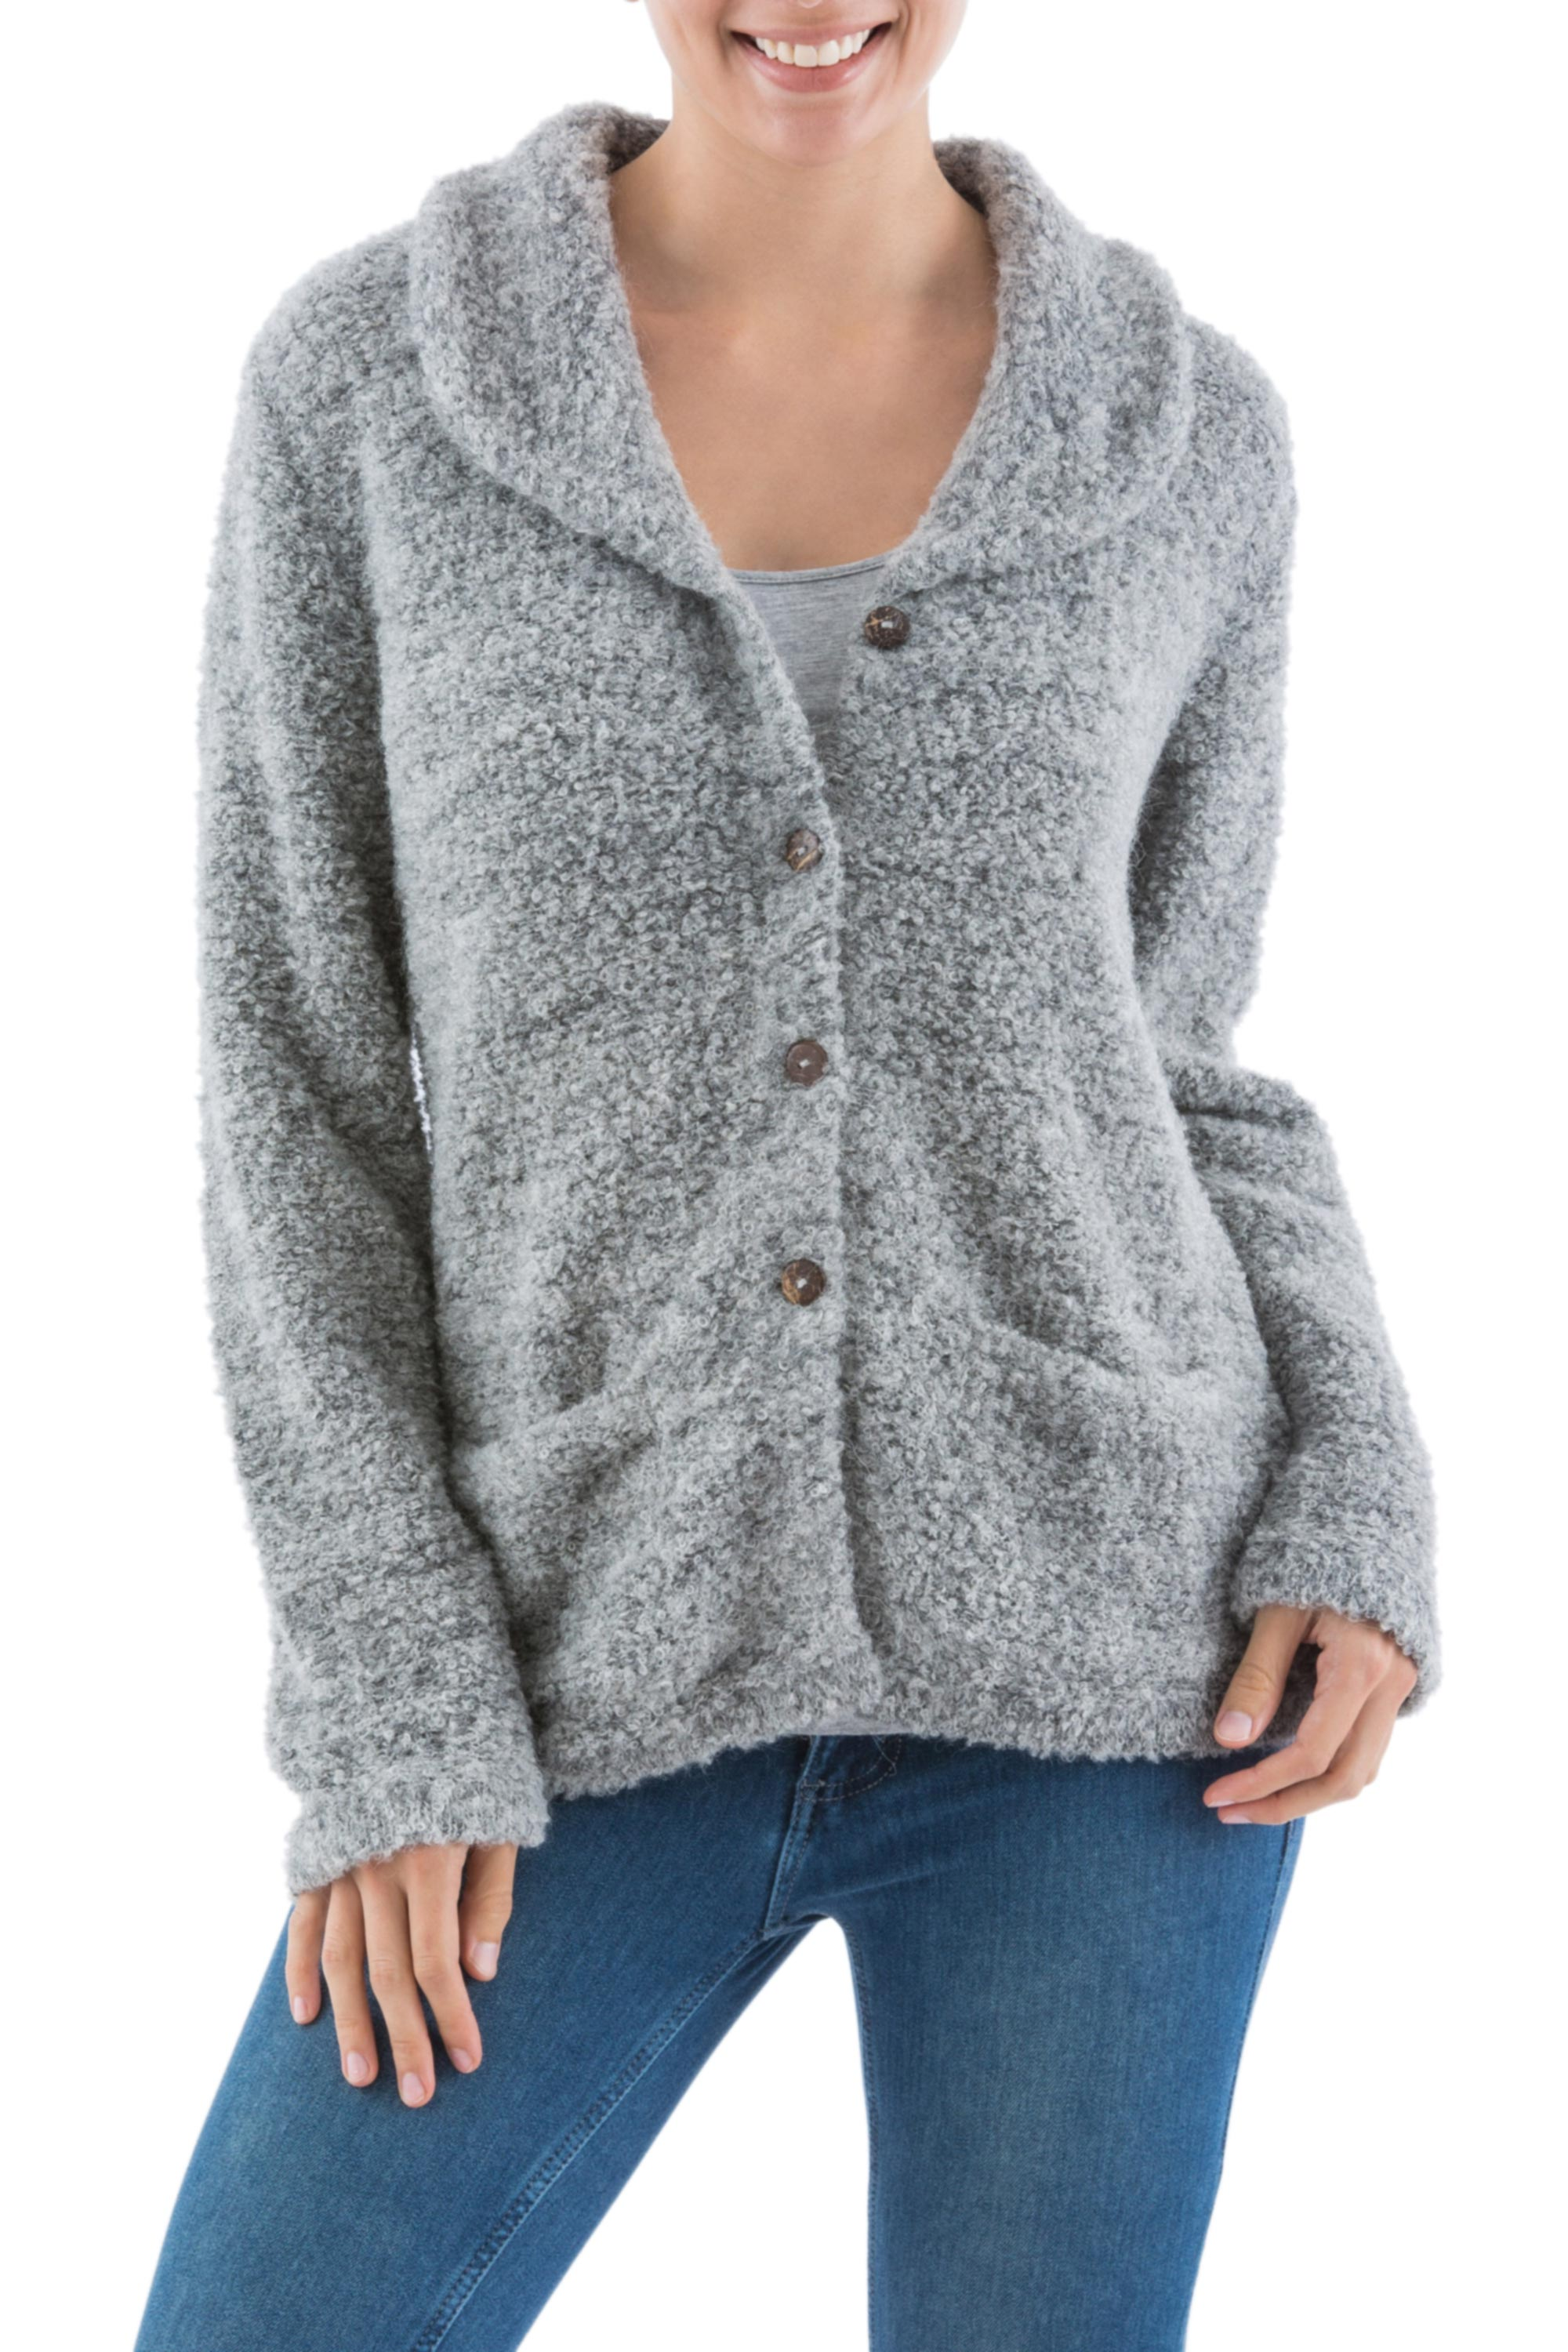 Alpaca blend boucle cardigan, 'Pearl Grey' sweater Andes Artisan Crafted Alpaca Blend Grey Cardigan with Collar, 'Pearl Grey' NOVICA